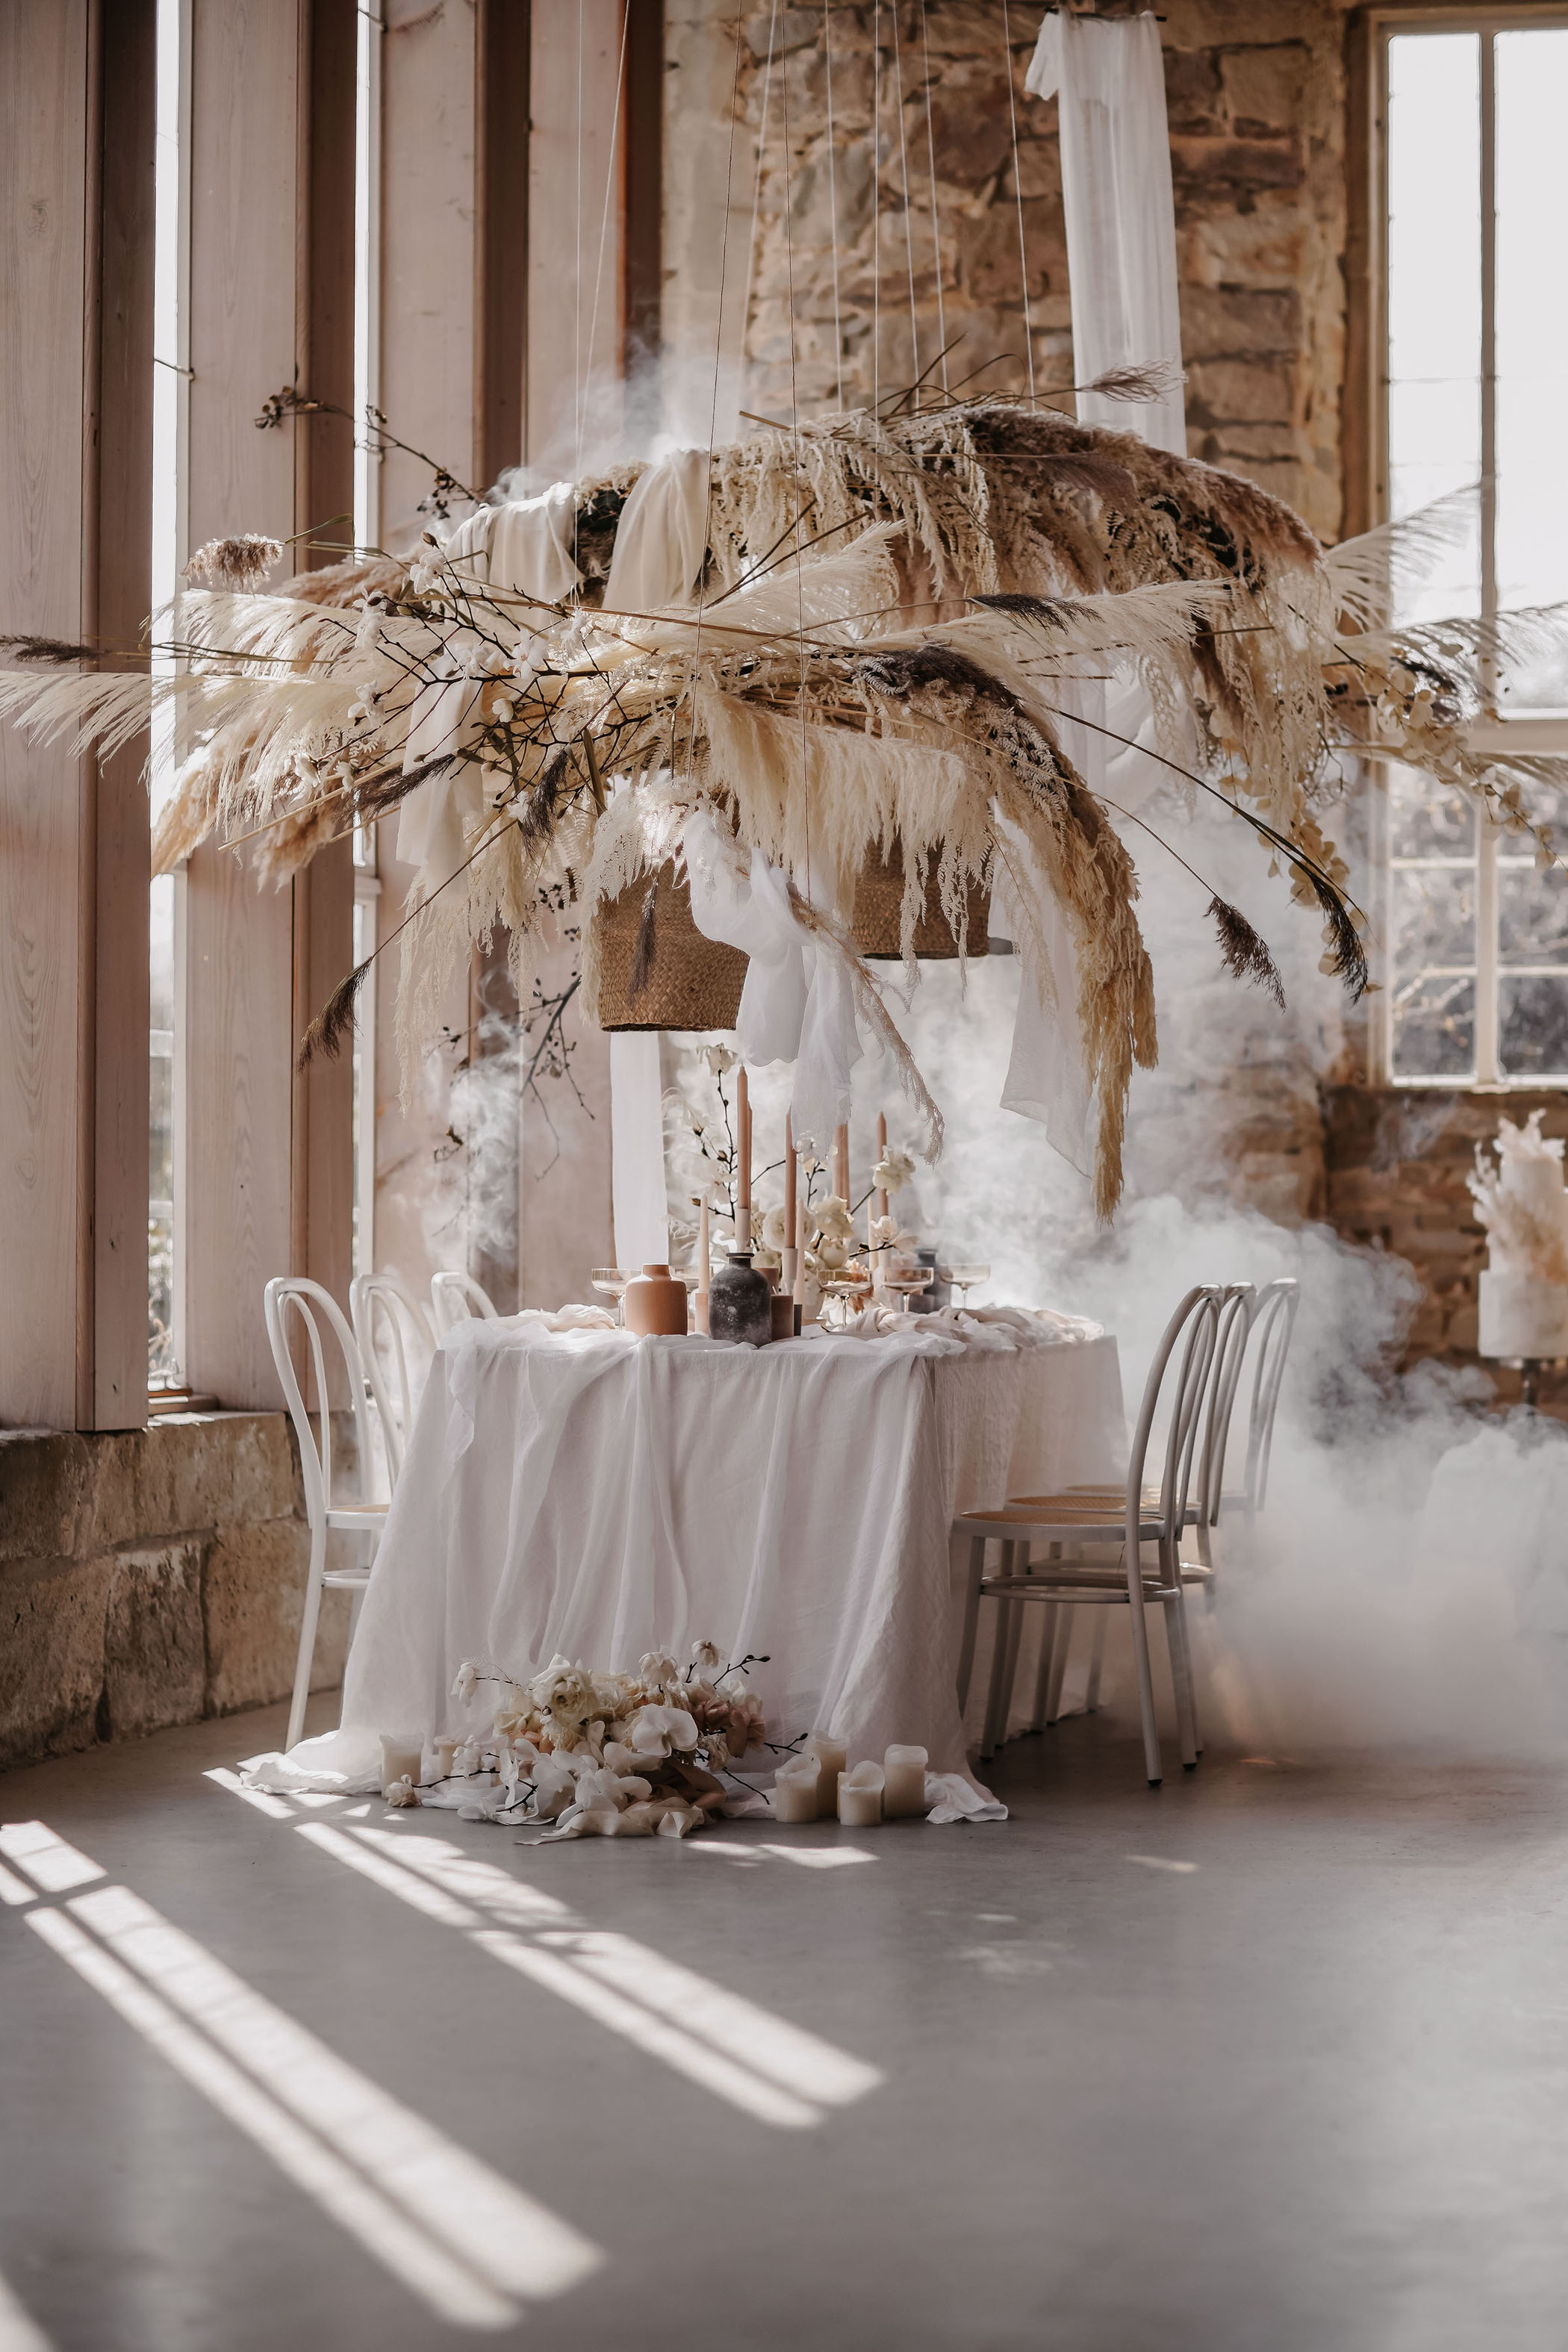 This Whimsical Wedding Inspiration Brings Romance + Neutrals to an Orangerie